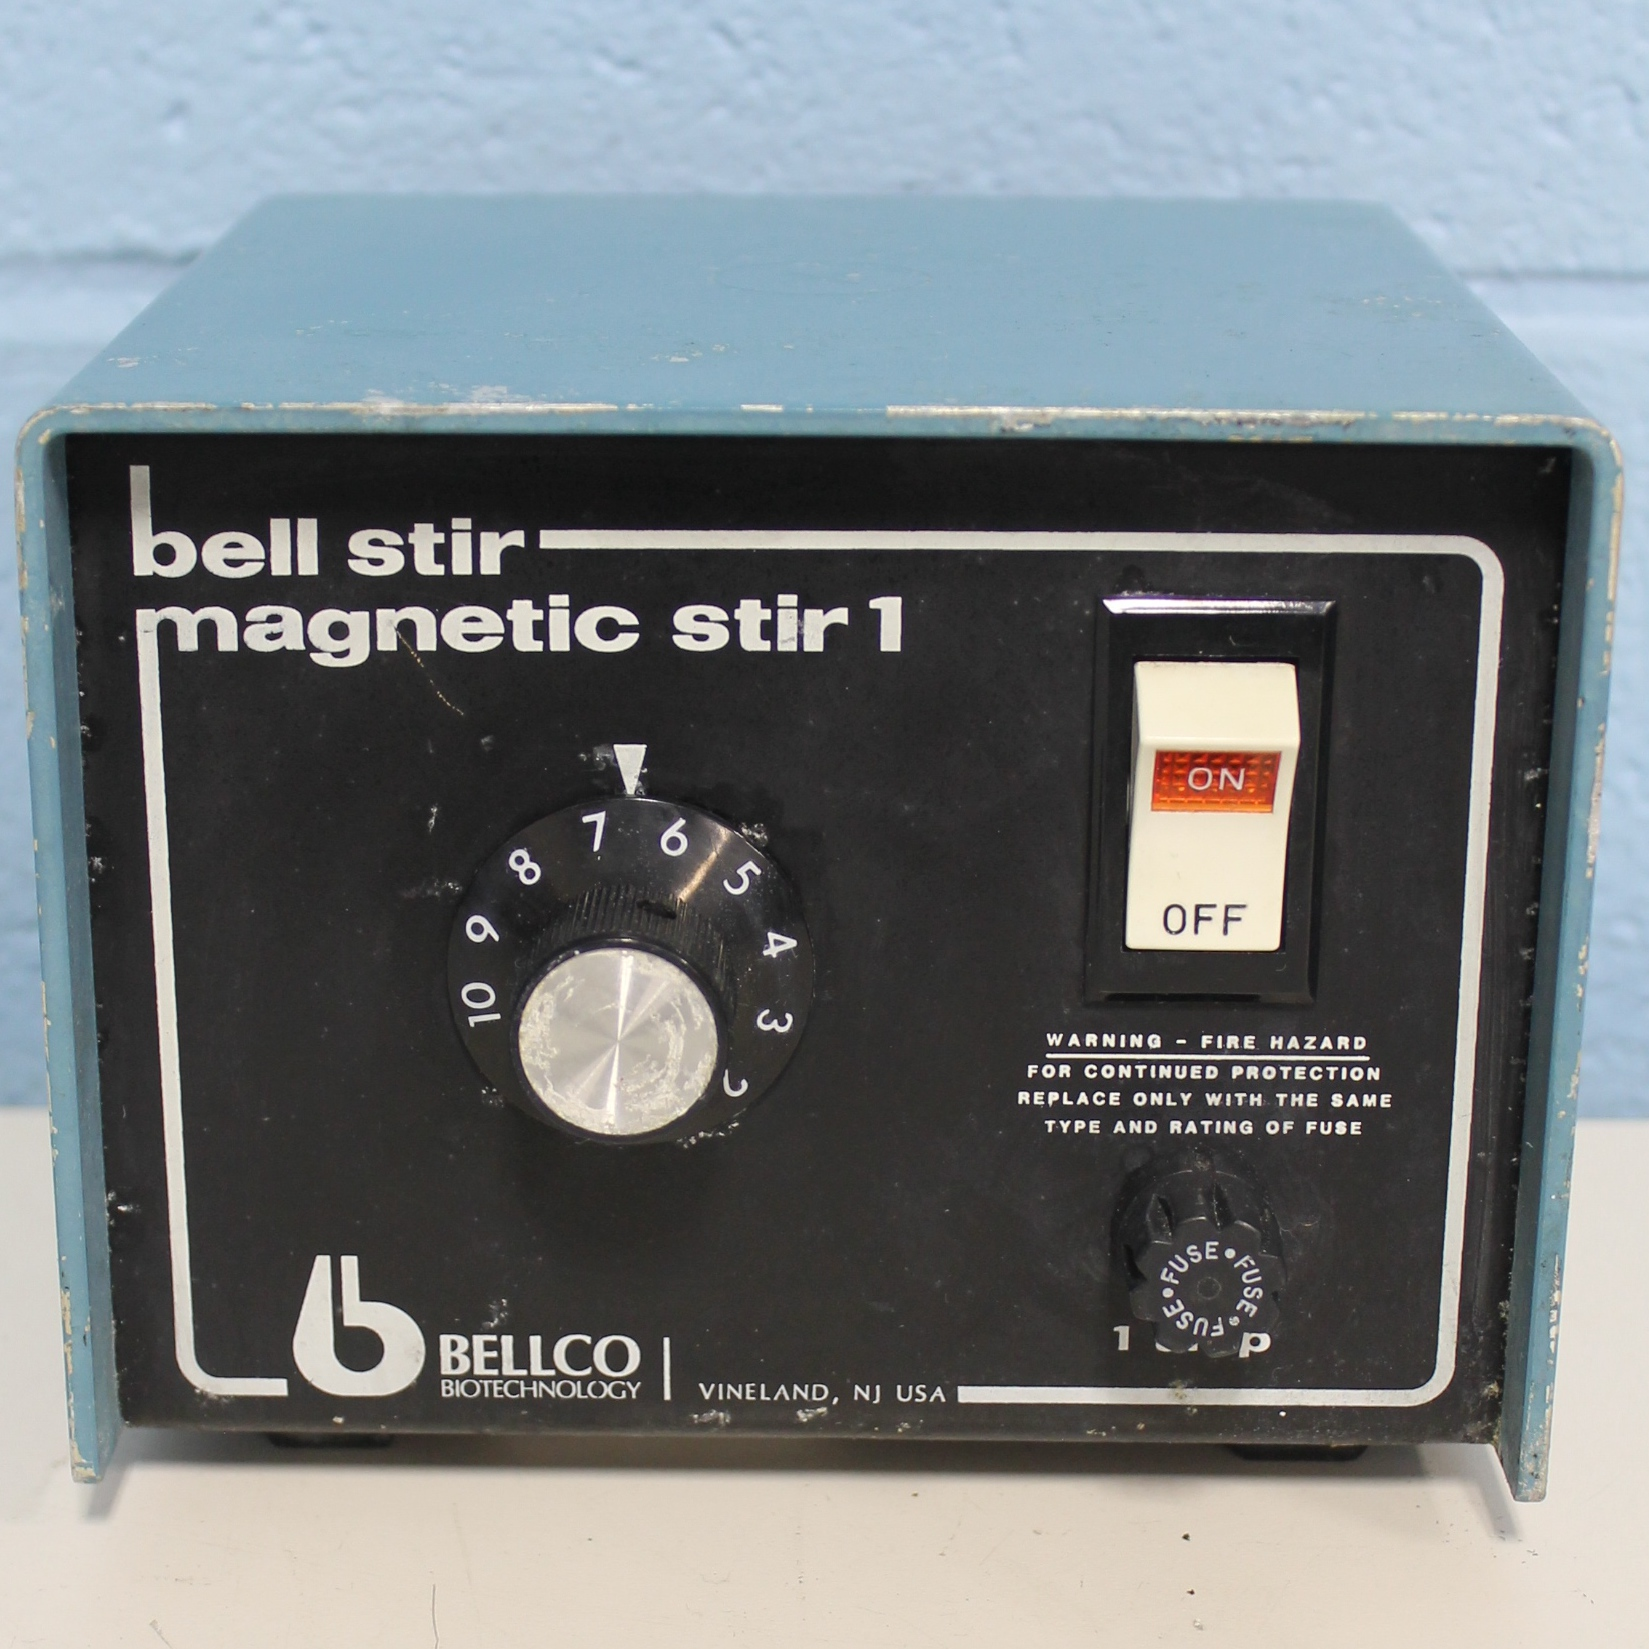 Bellco Biotechnology Bell Stir Magnetic Stir 1 Image